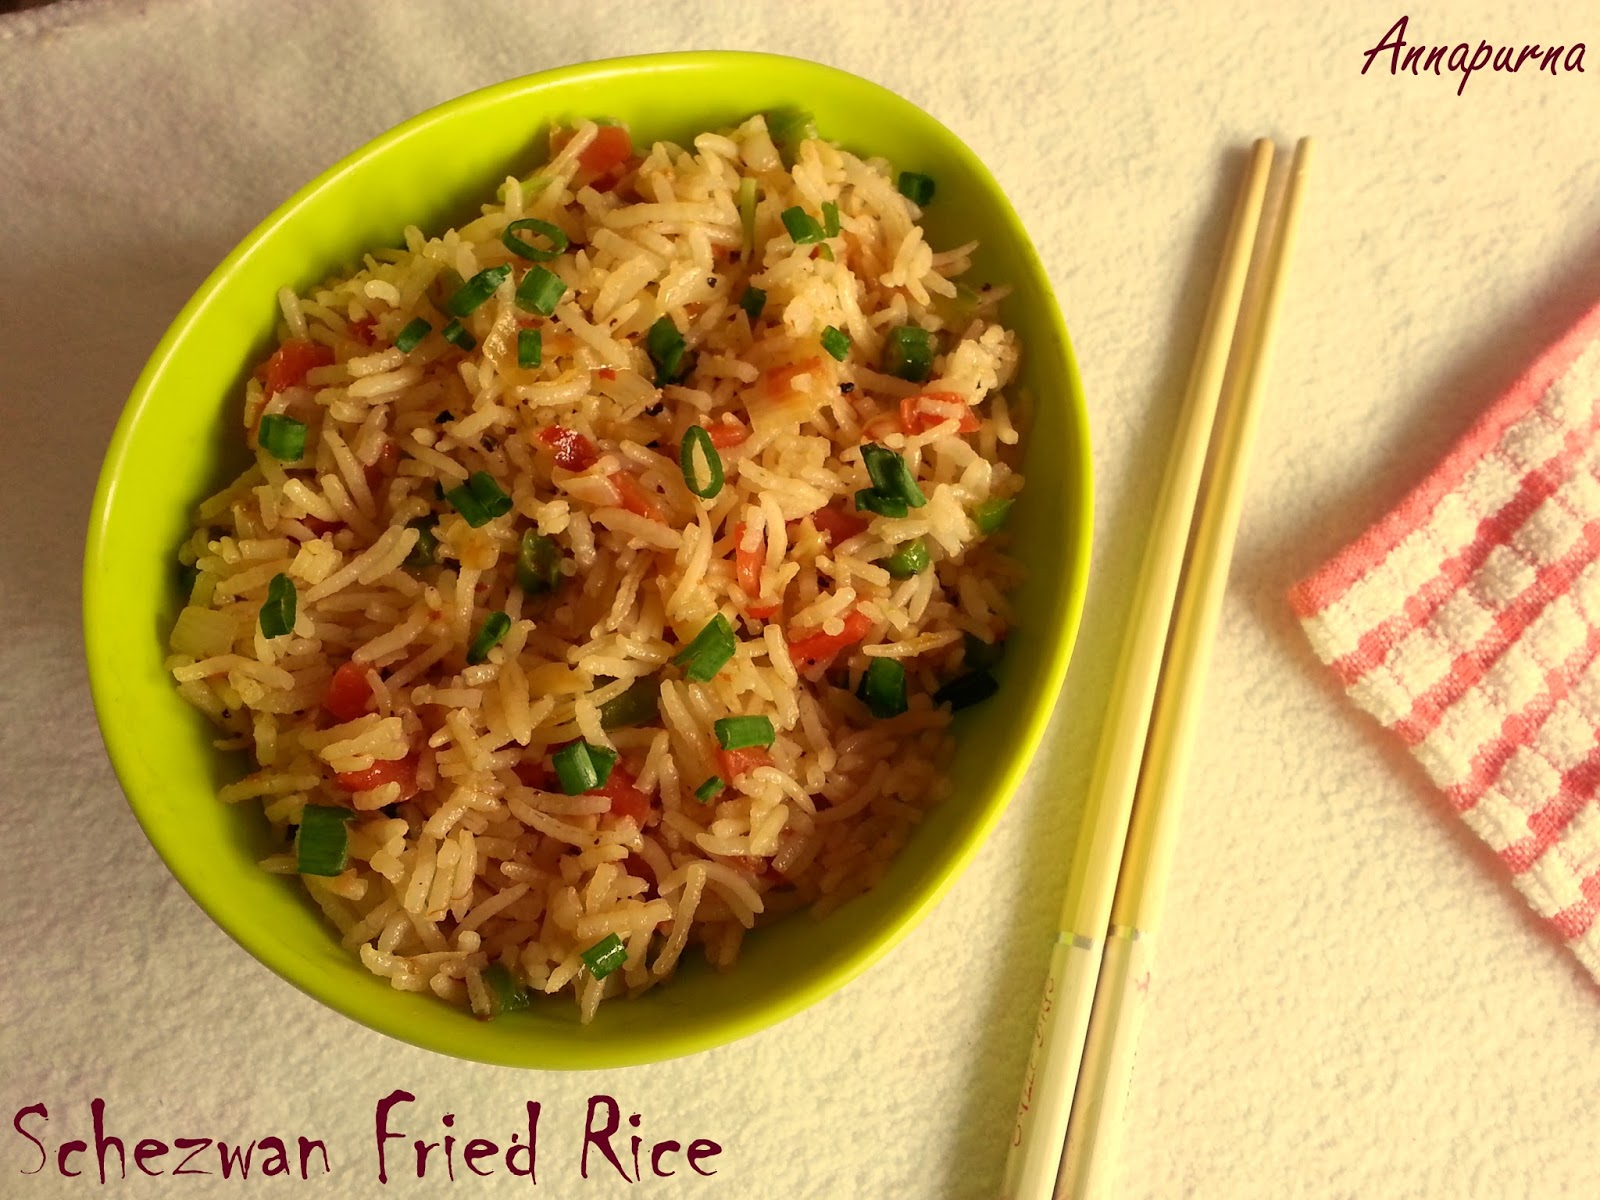 Annapurna schezwan fried rice indo chinese cuisine for Annapurna cuisine